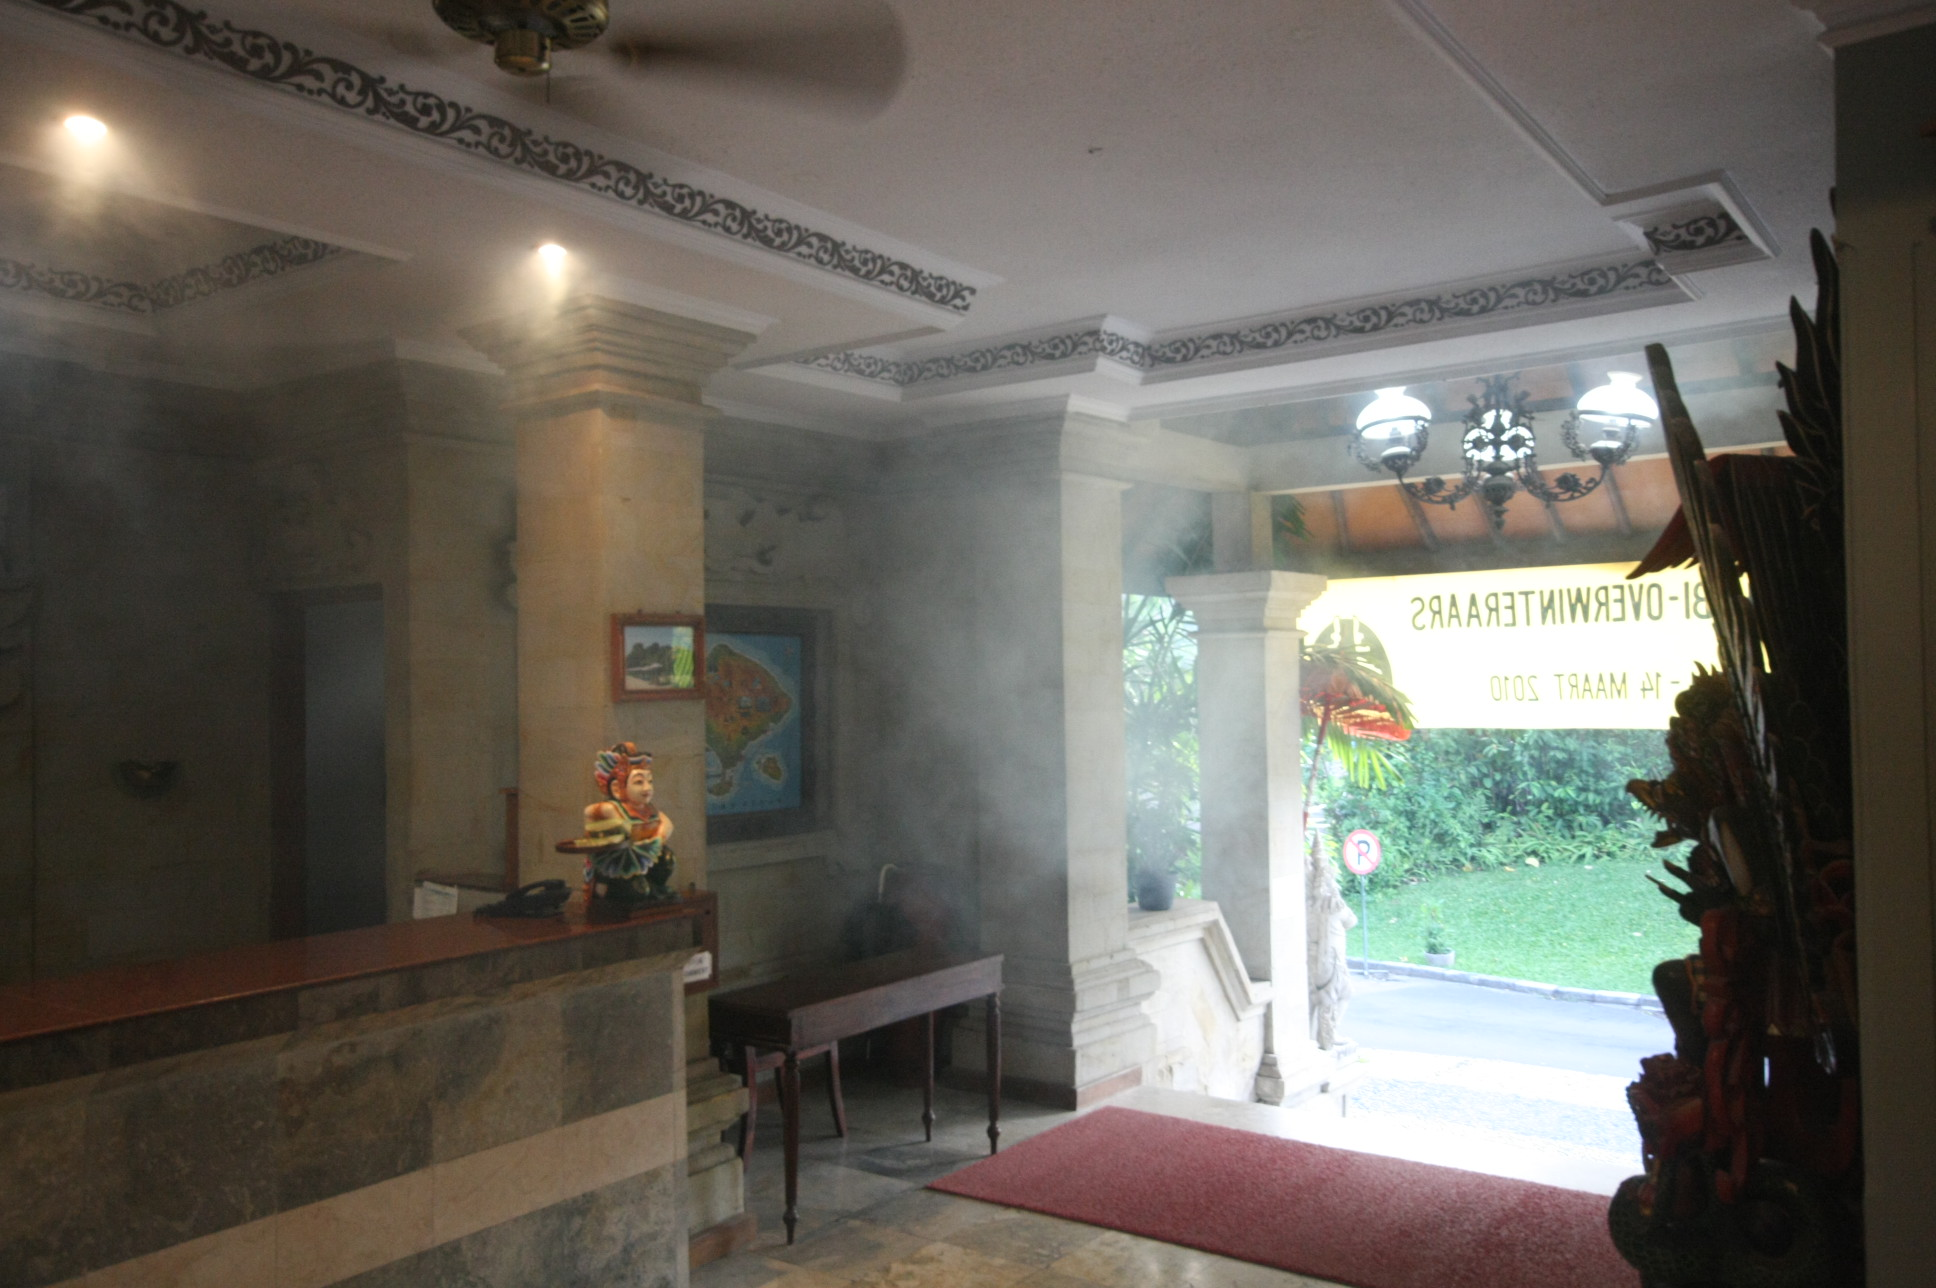 Fumigation of a hotel (Vila Shanti) in Bali where the smoke even reaches the hotel lobby (Feb 2010). & Fumigation - Wikipedia